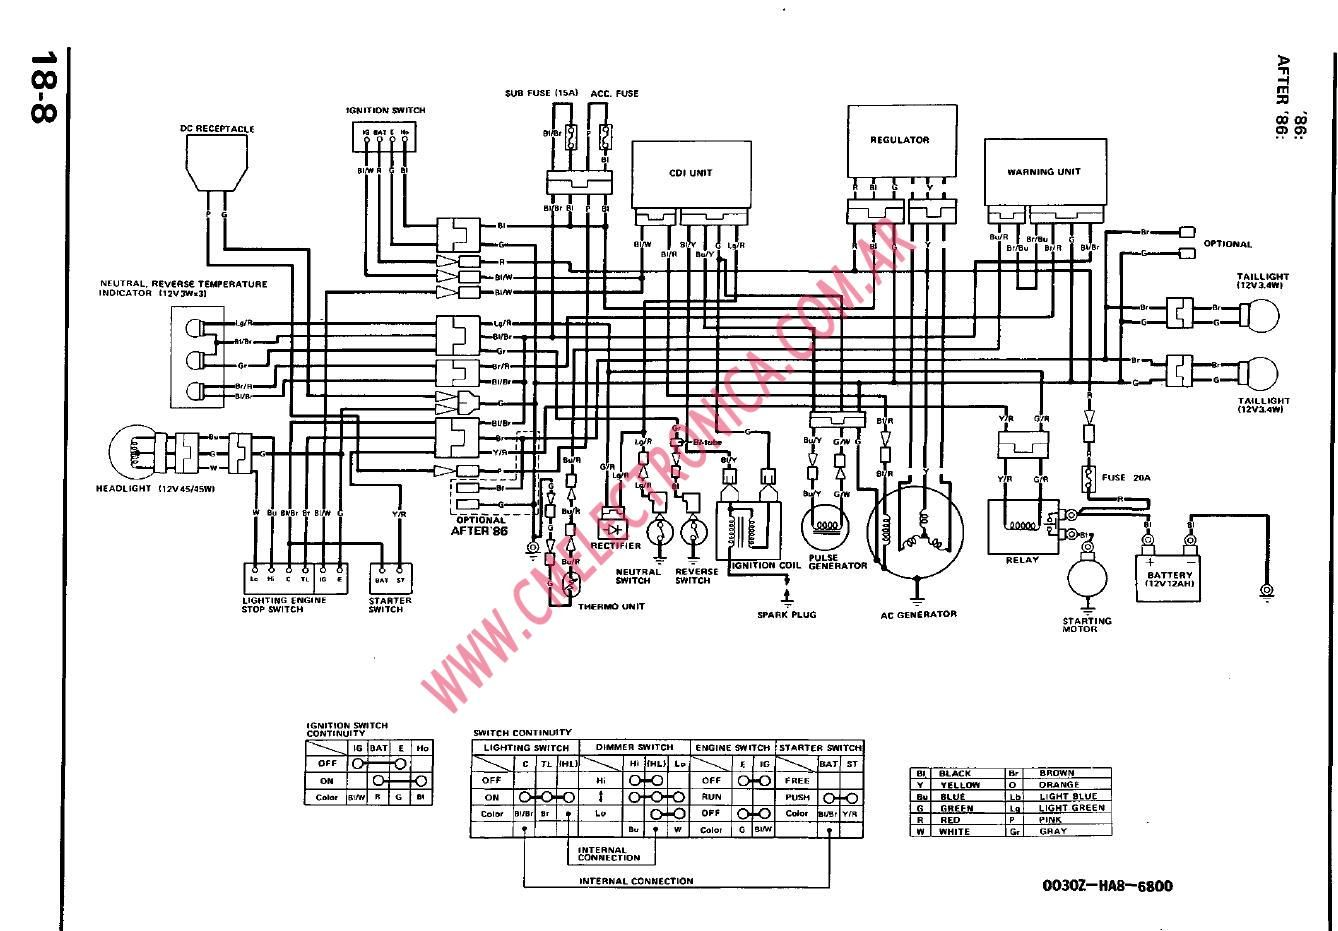 Honda 300 Fuse Box - 1959 Ford Truck Wiring Diagrams for Wiring Diagram  SchematicsWiring Diagram Schematics